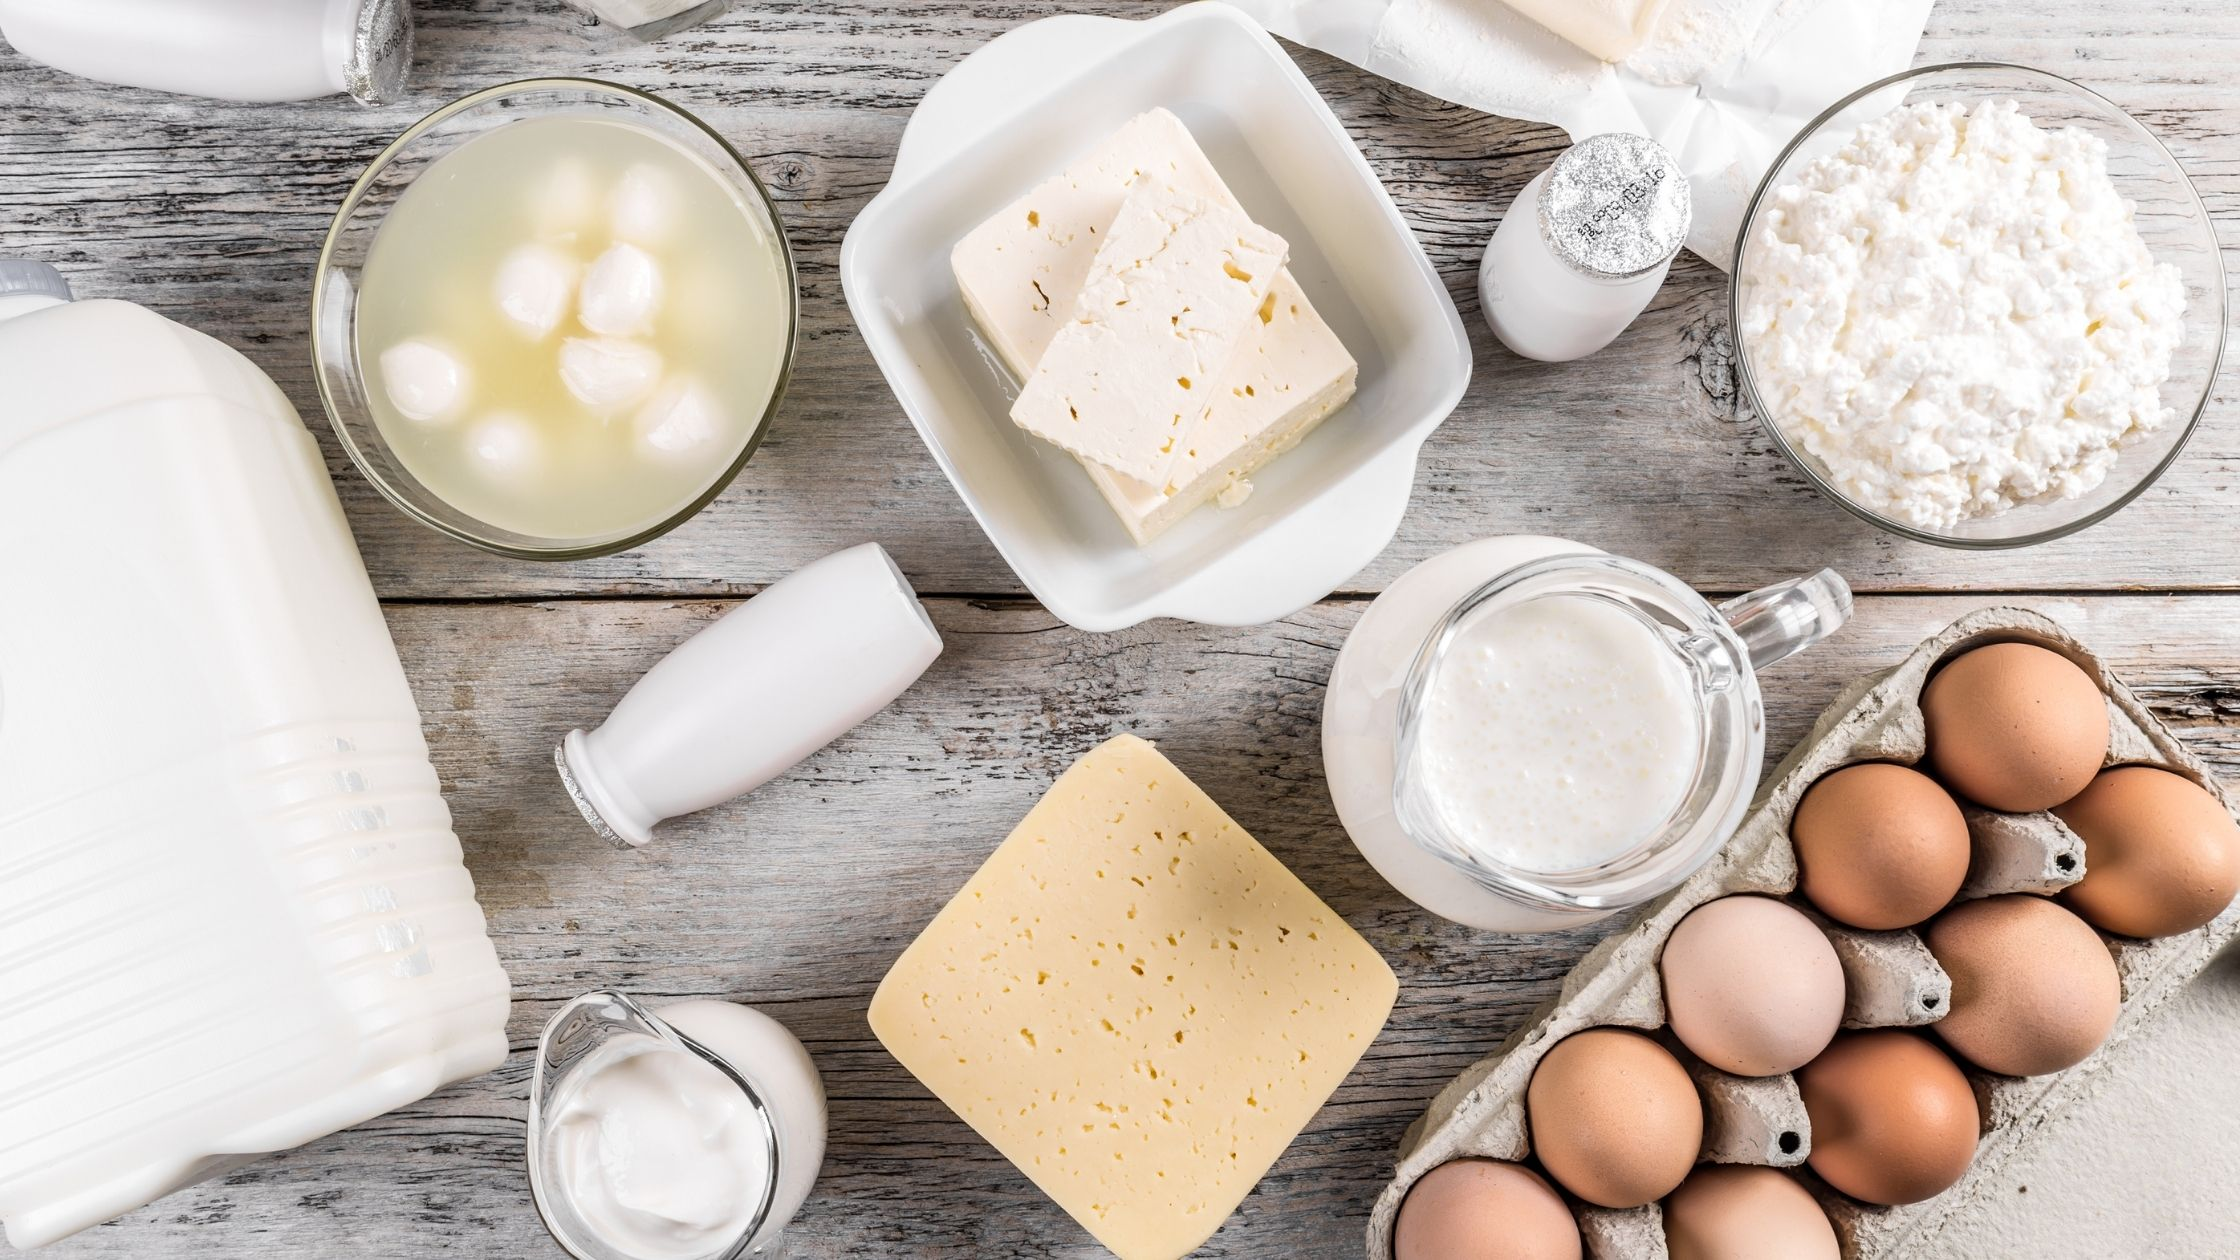 THE 5 BEST DAIRY PRODUCTS TO CONSUME WHEN ON KETO